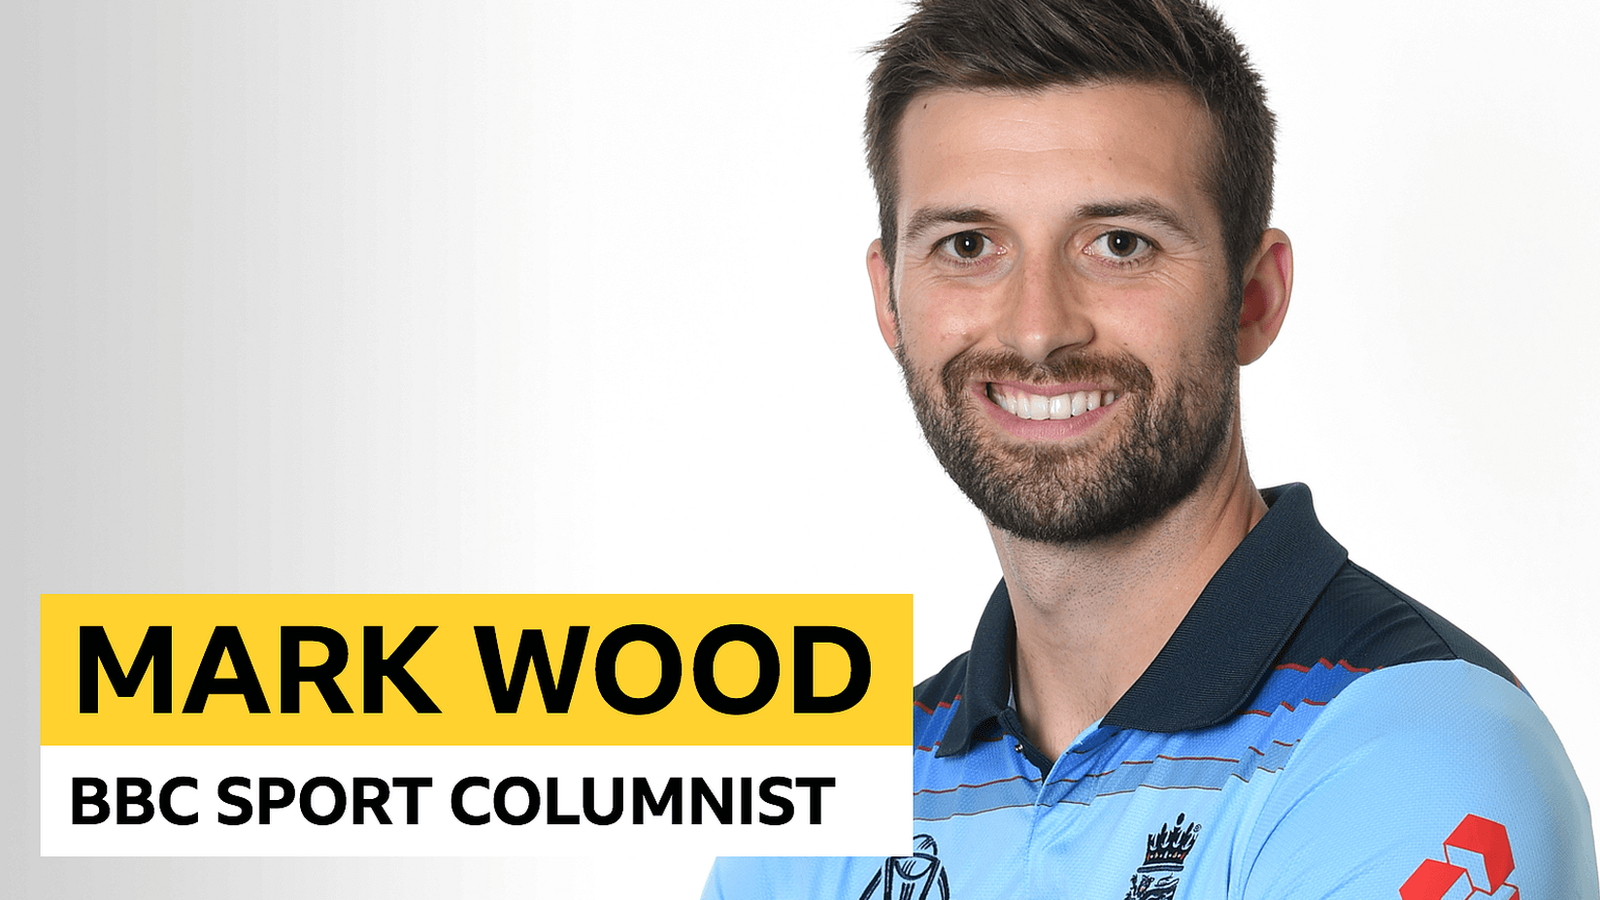 'Curran on Love Island, Plunkett on Gogglebox' - Wood's World Cup